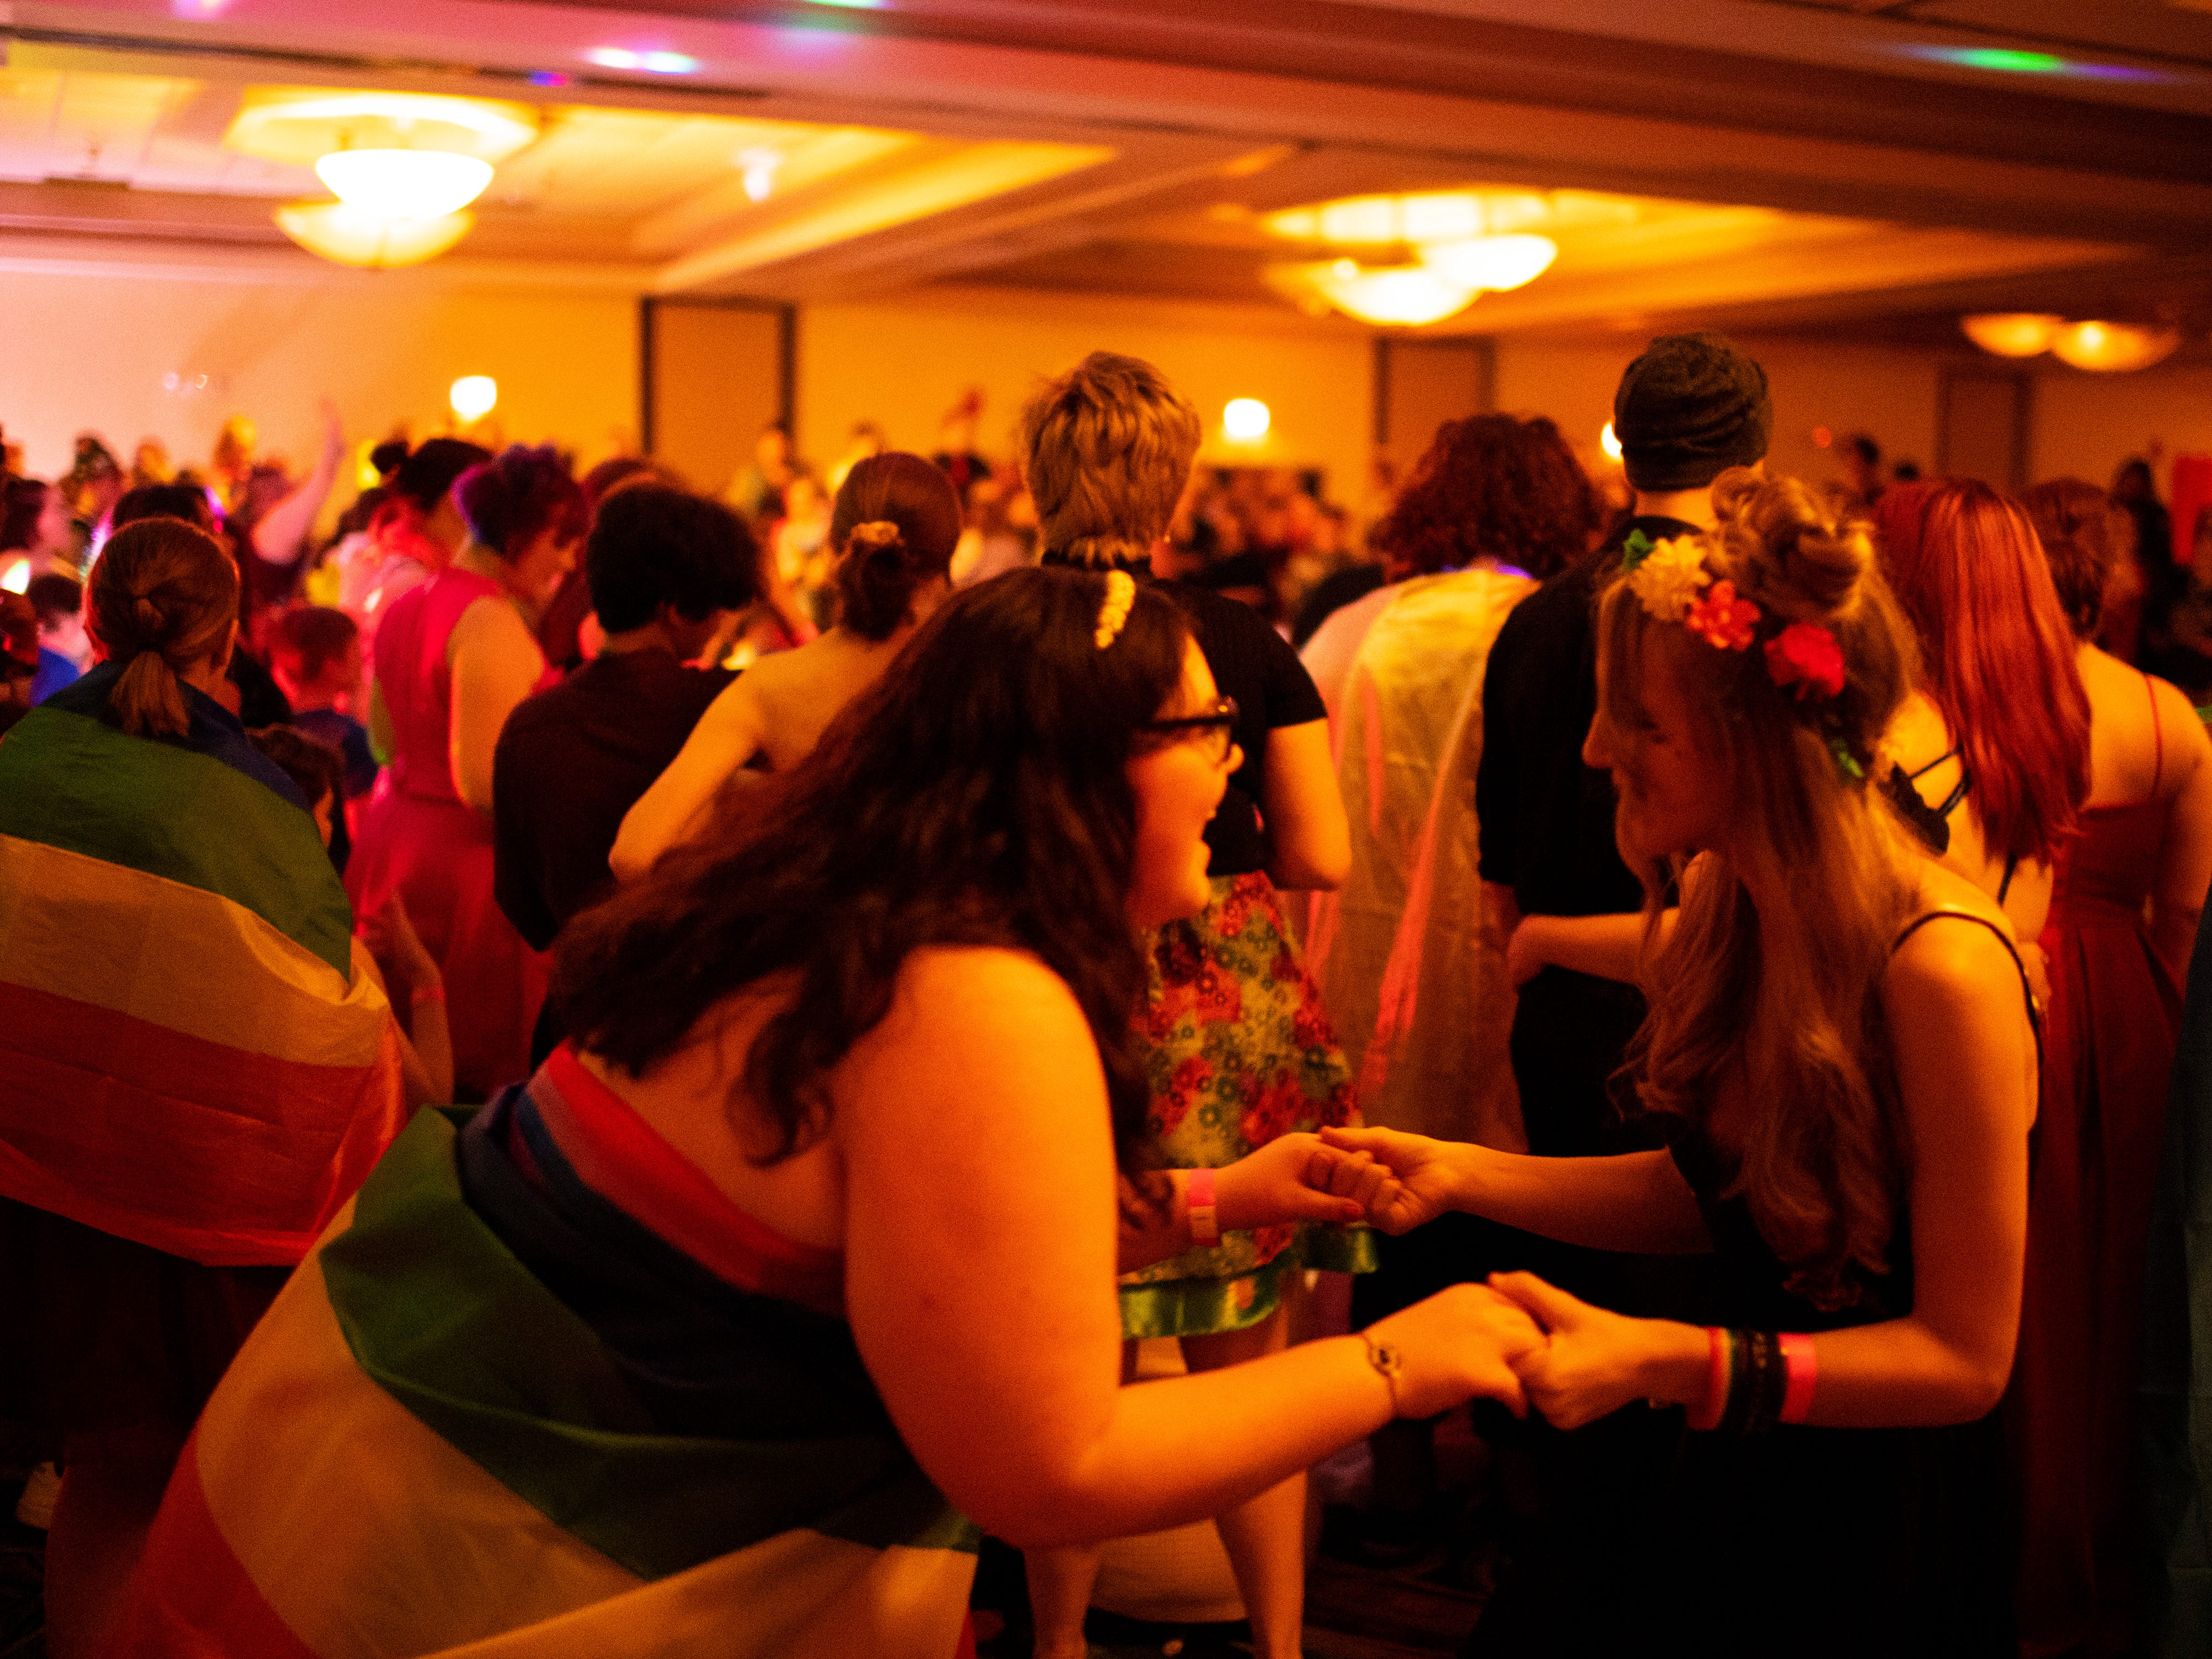 Serin Stone, 16, left, and her date who declined to give her name, dance at the Tri-State Alliance Pride Prom at the Holiday Inn Saturday night.